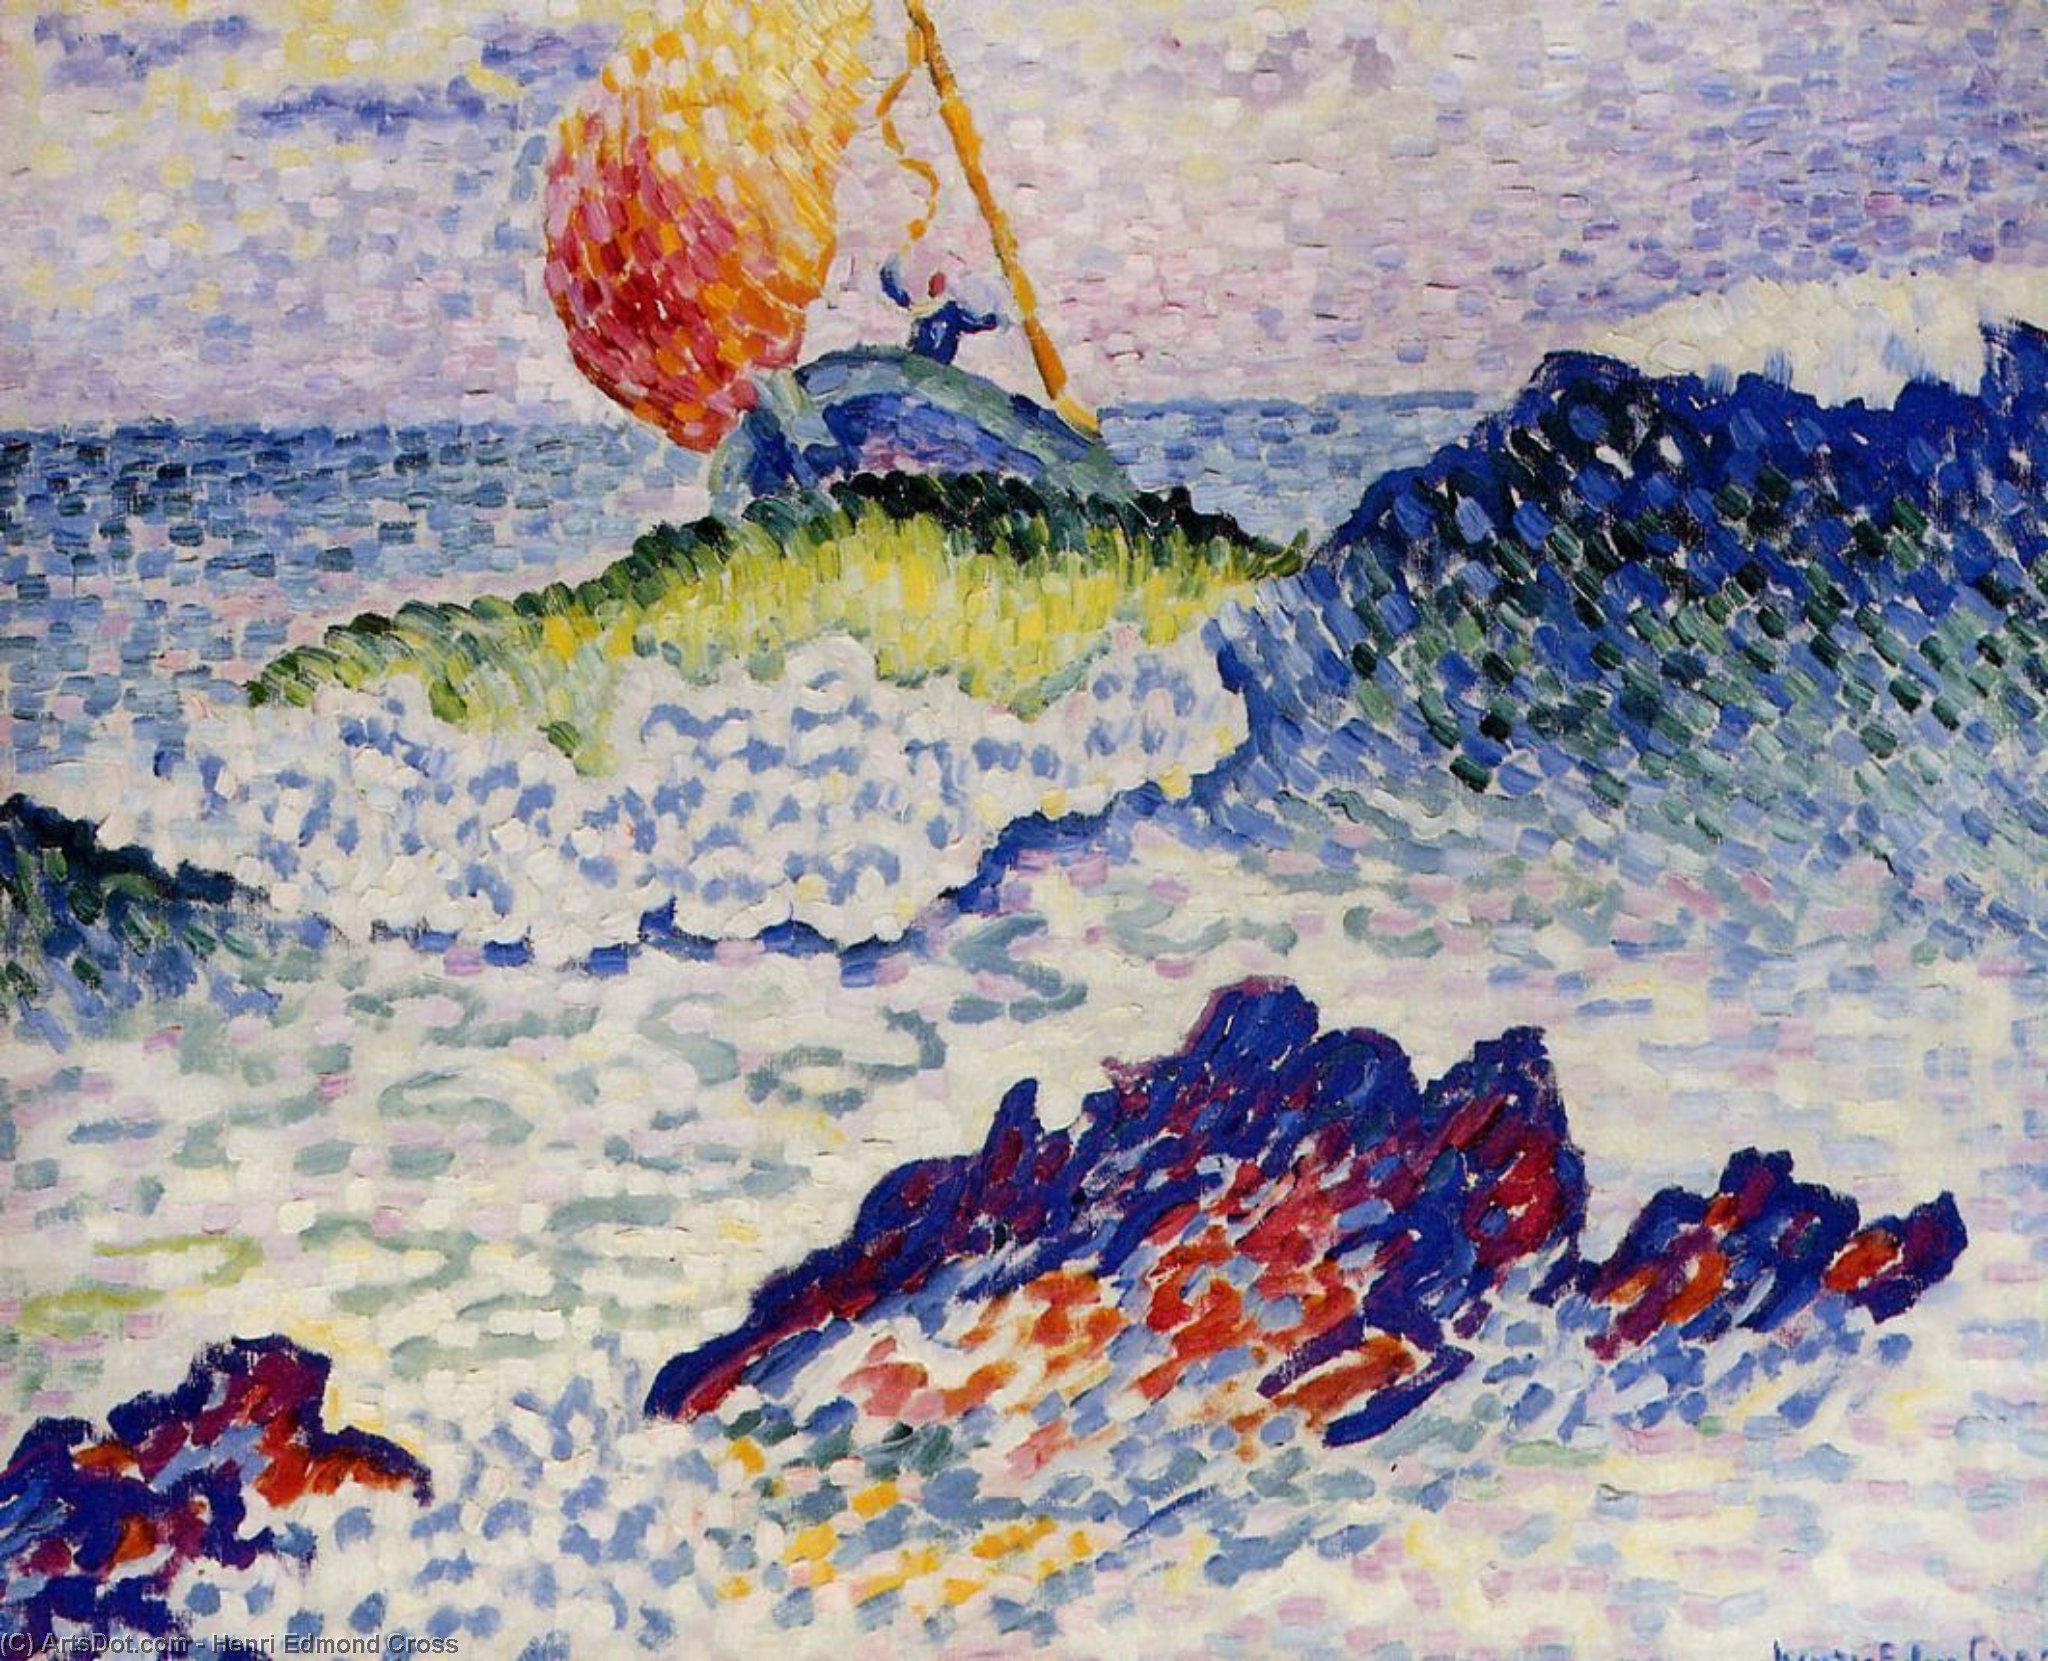 The Shipwreck, Oil On Canvas by Henri Edmond Cross (1856-1910, France)